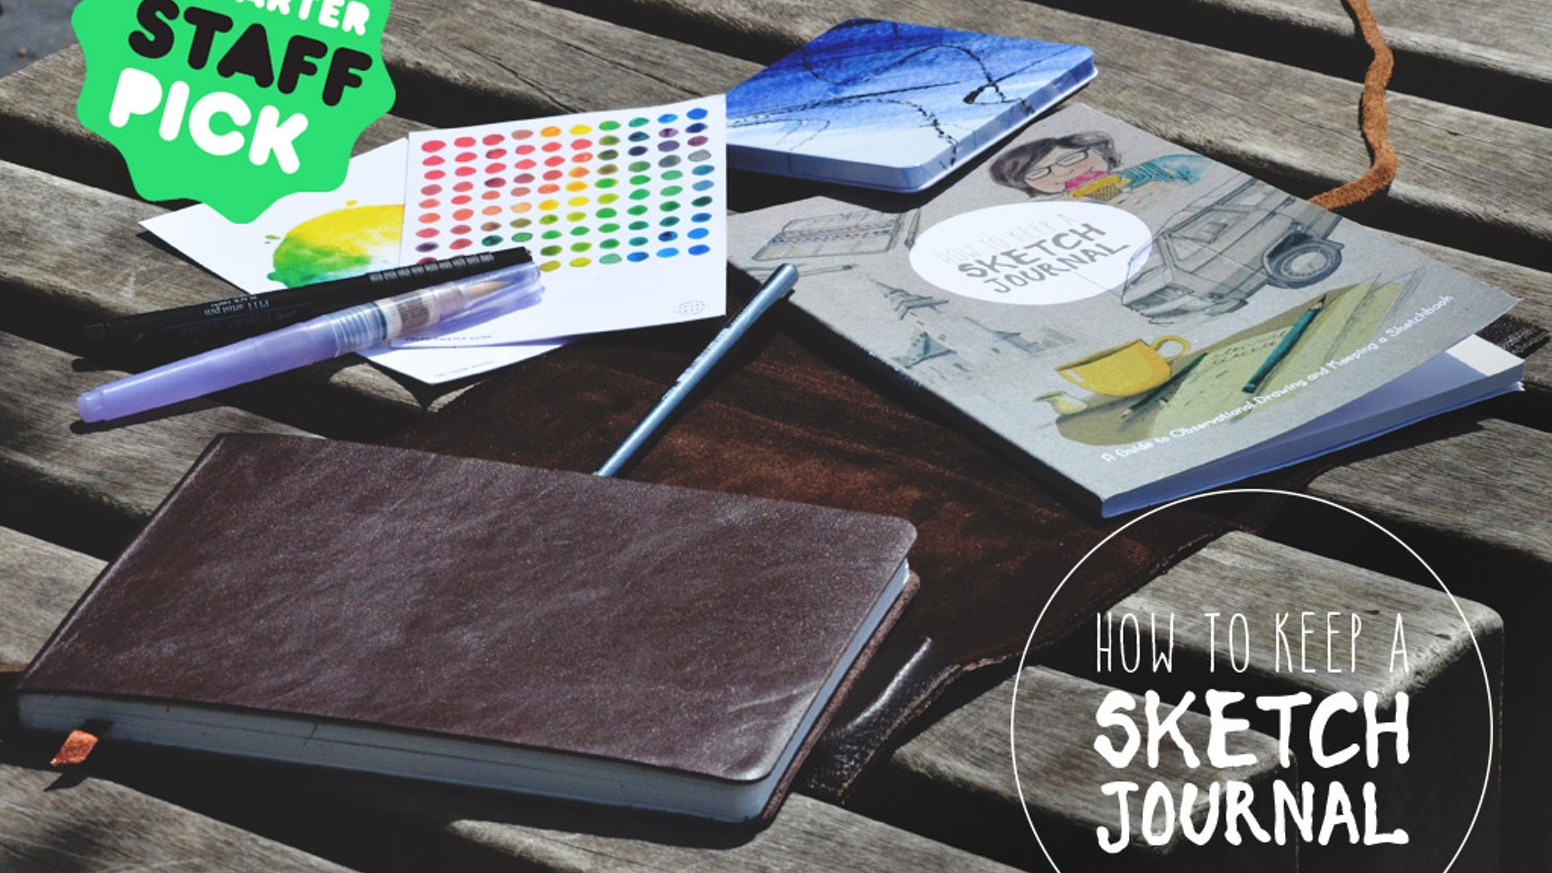 A travel-sized artistic solution to enable you to carry the tools, inspiration & advice you need to keep a daily record of your life